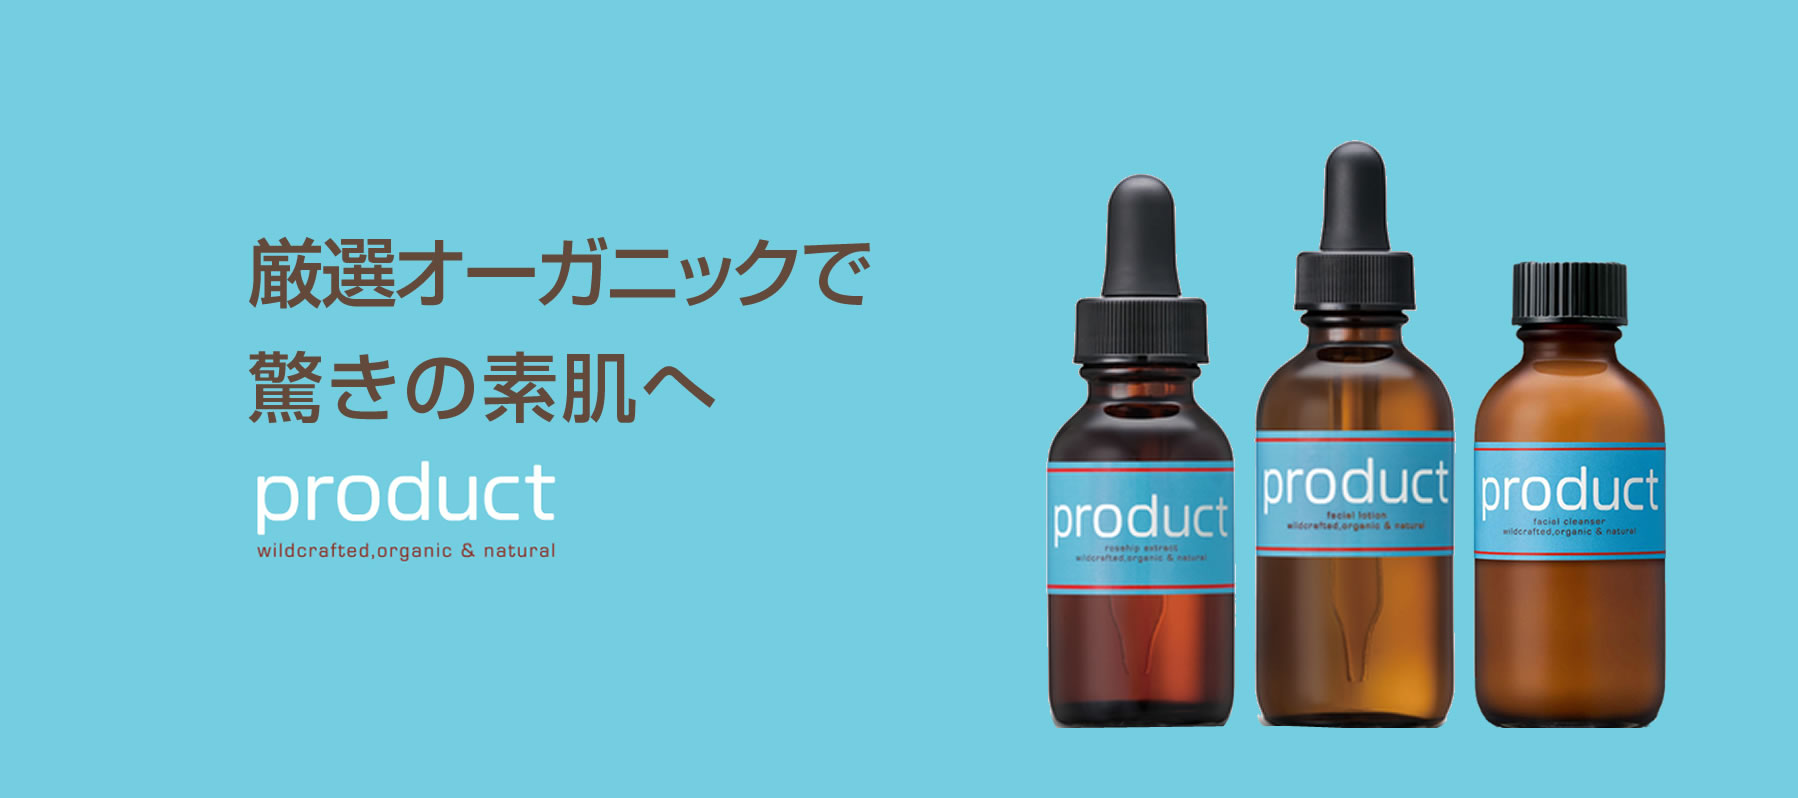 product kokobuy-ココバイ-